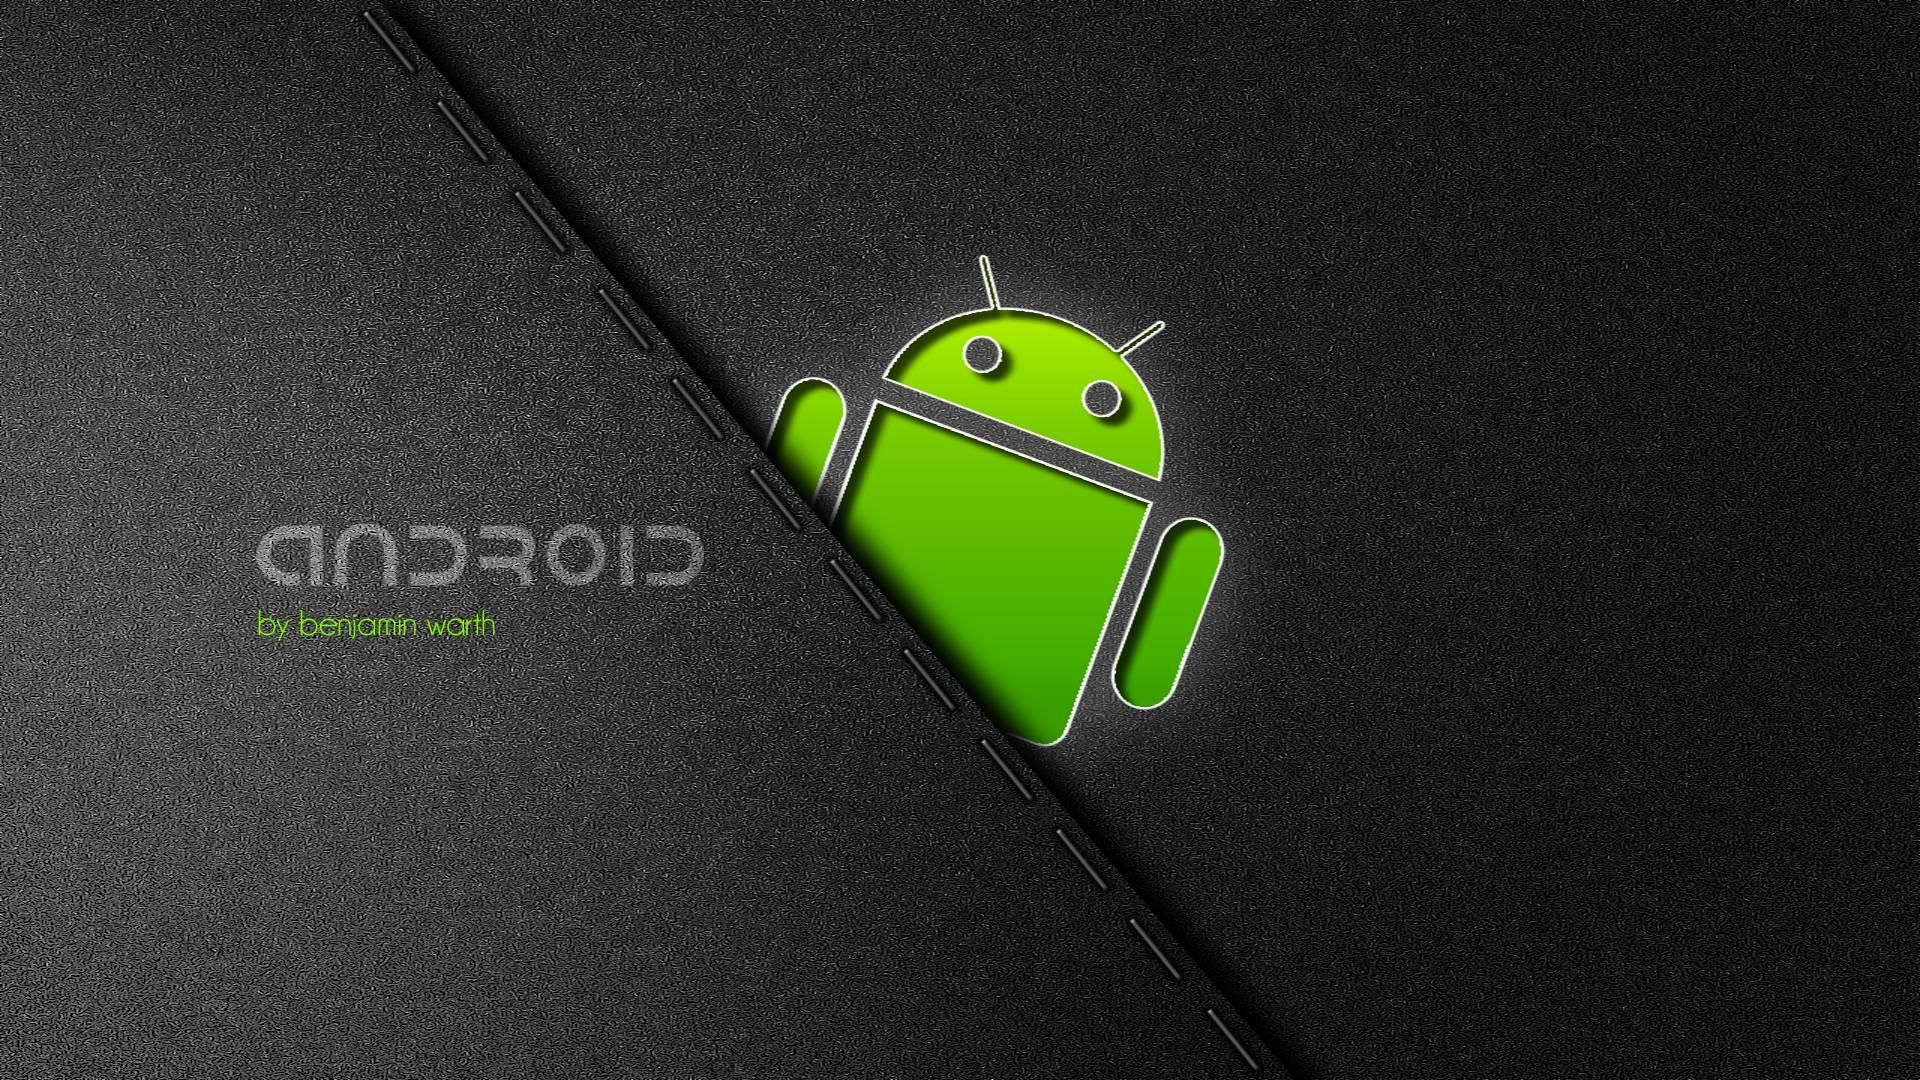 Hd Wallpaper For Android Tablet